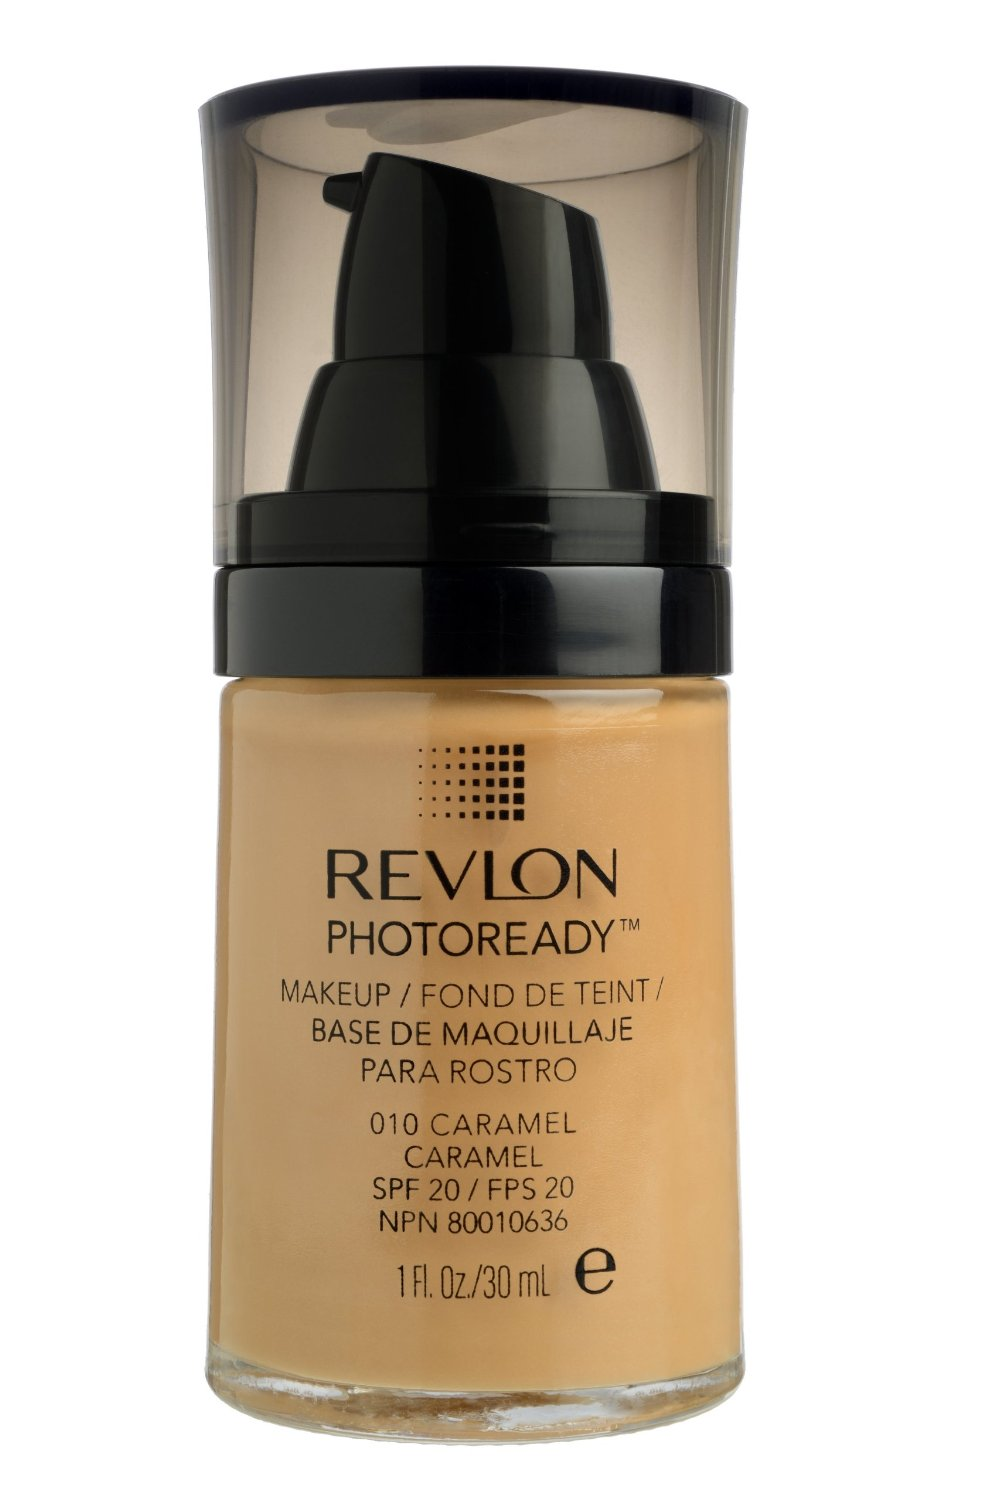 REVLON PHOTOREADY FOUNDATION Review, REVLON PHOTOREADY ...